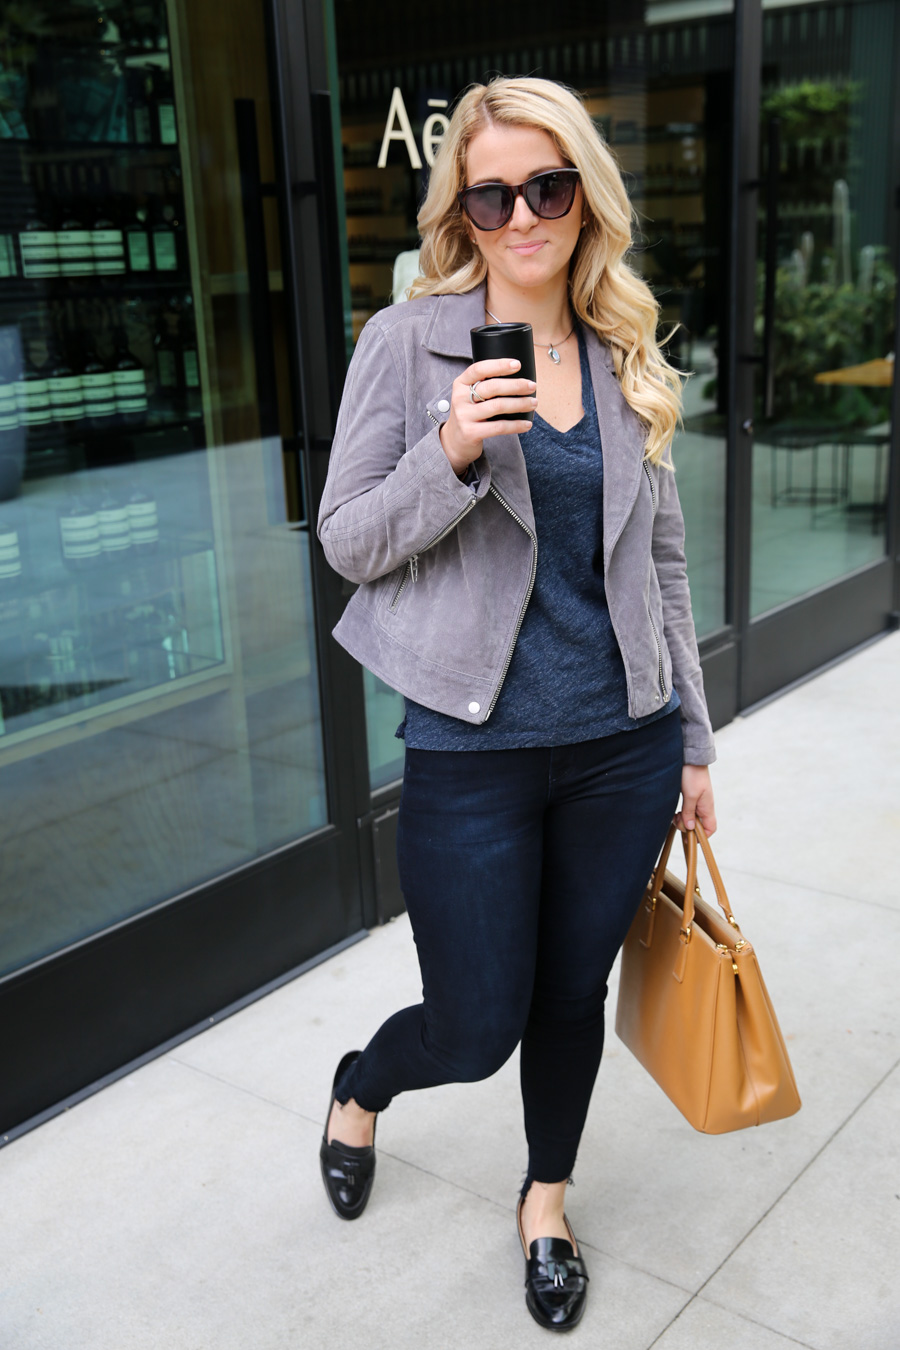 Suede Leather Jacket Outfit for Women